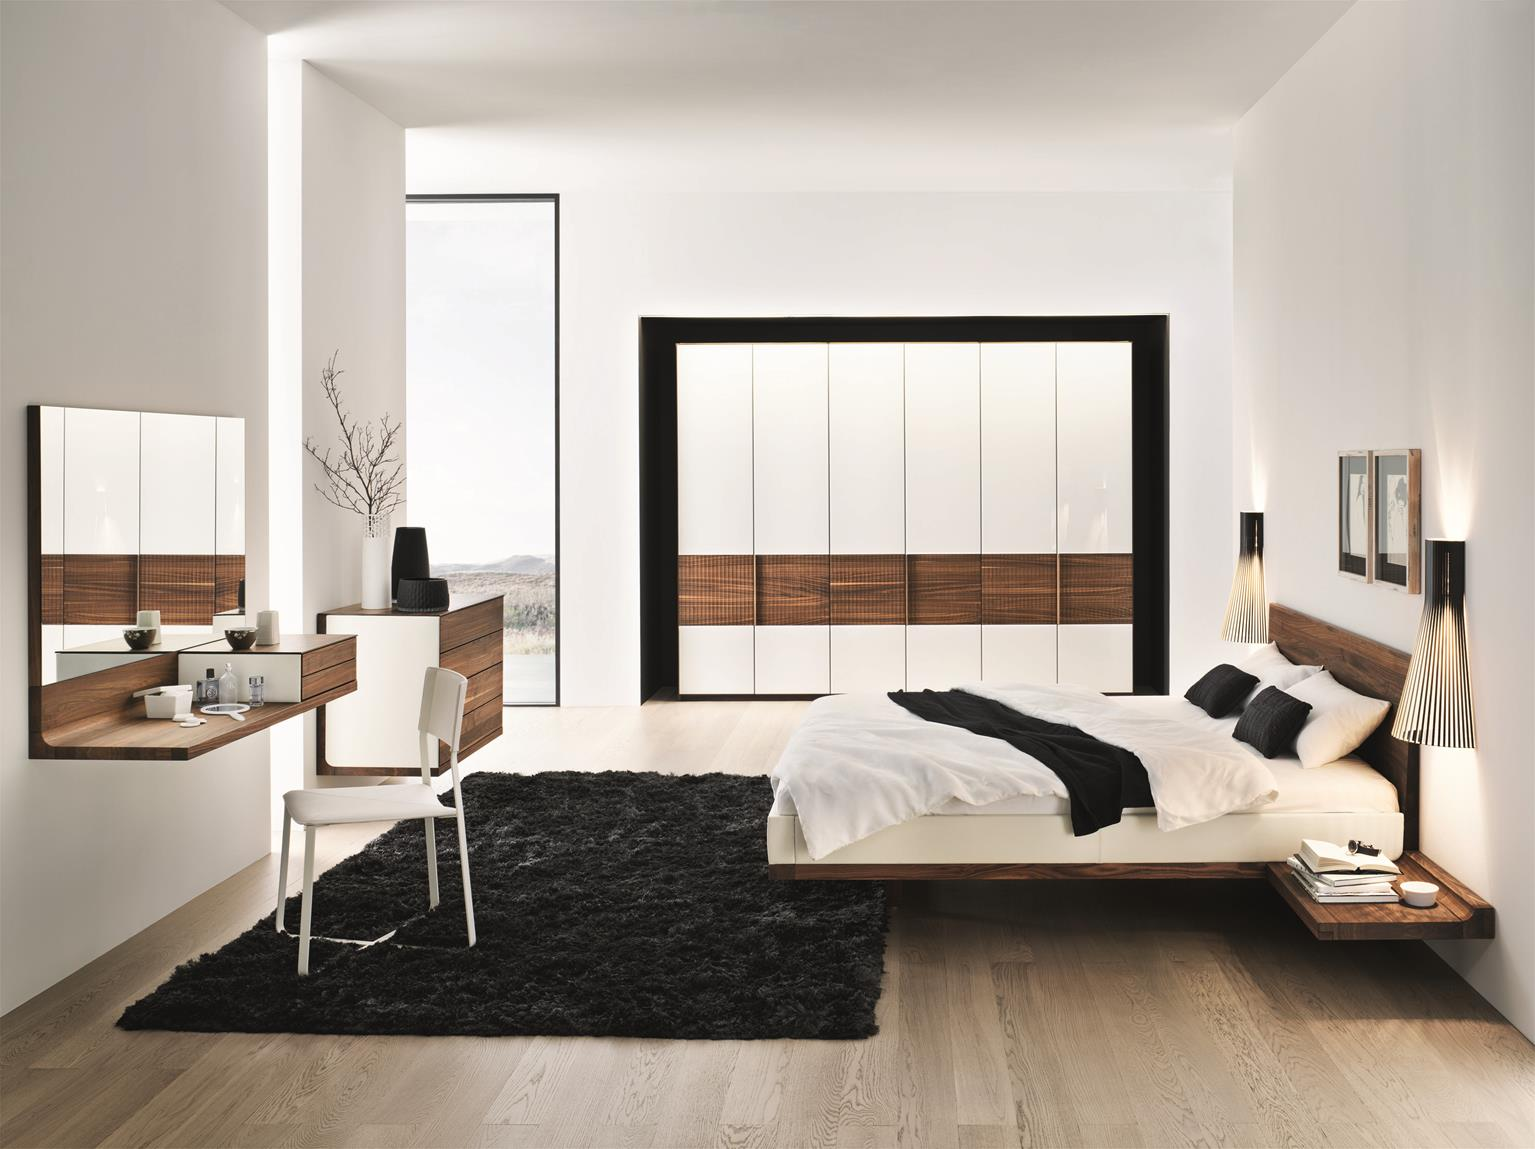 bildergalerie schlafzimmer betten wohnwiese jette schlund ellingen team 7. Black Bedroom Furniture Sets. Home Design Ideas